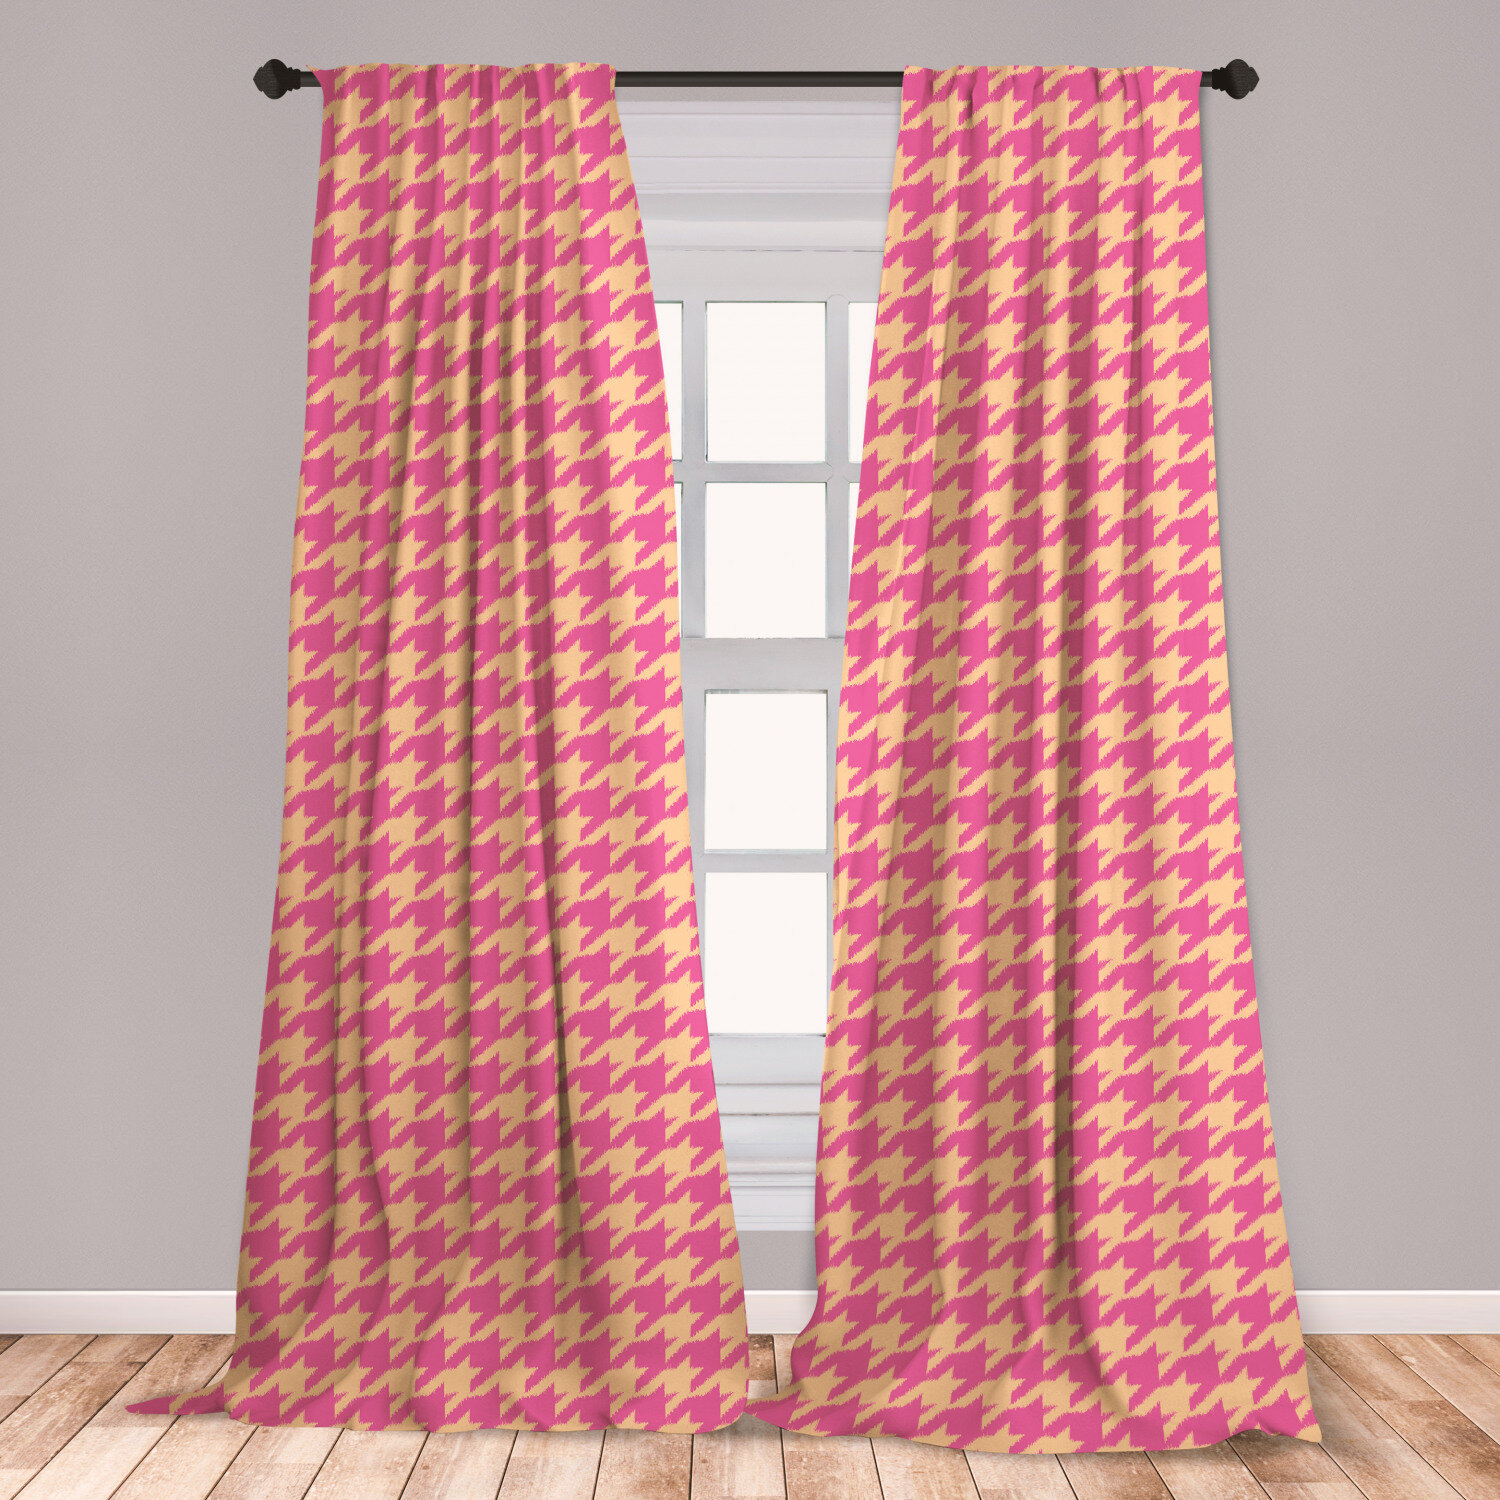 Ambesonne Houndstooth Curtains